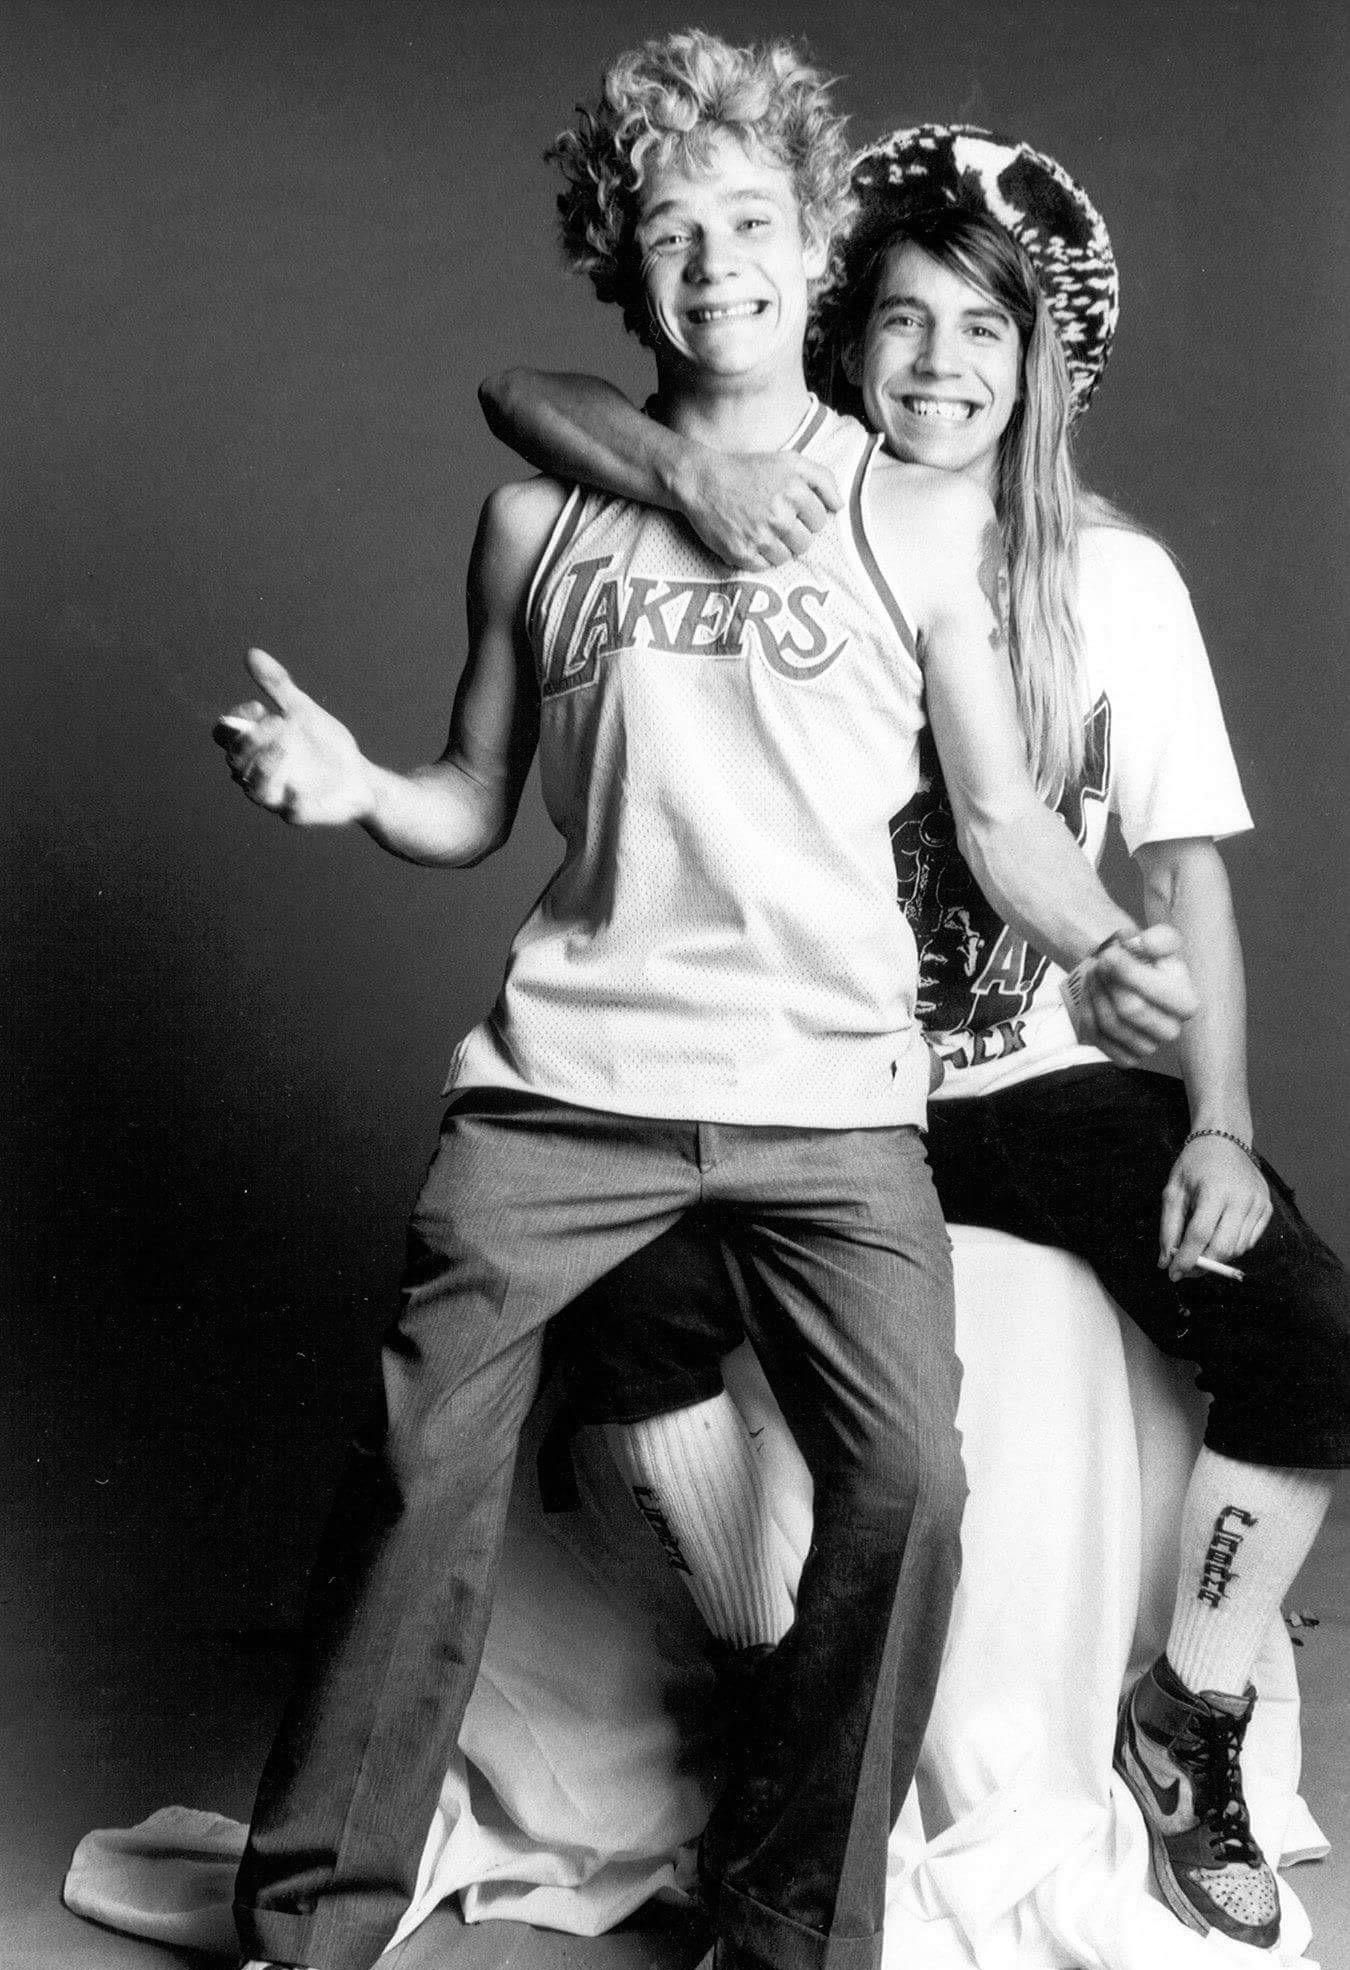 anthony did flea high kiedis meet school